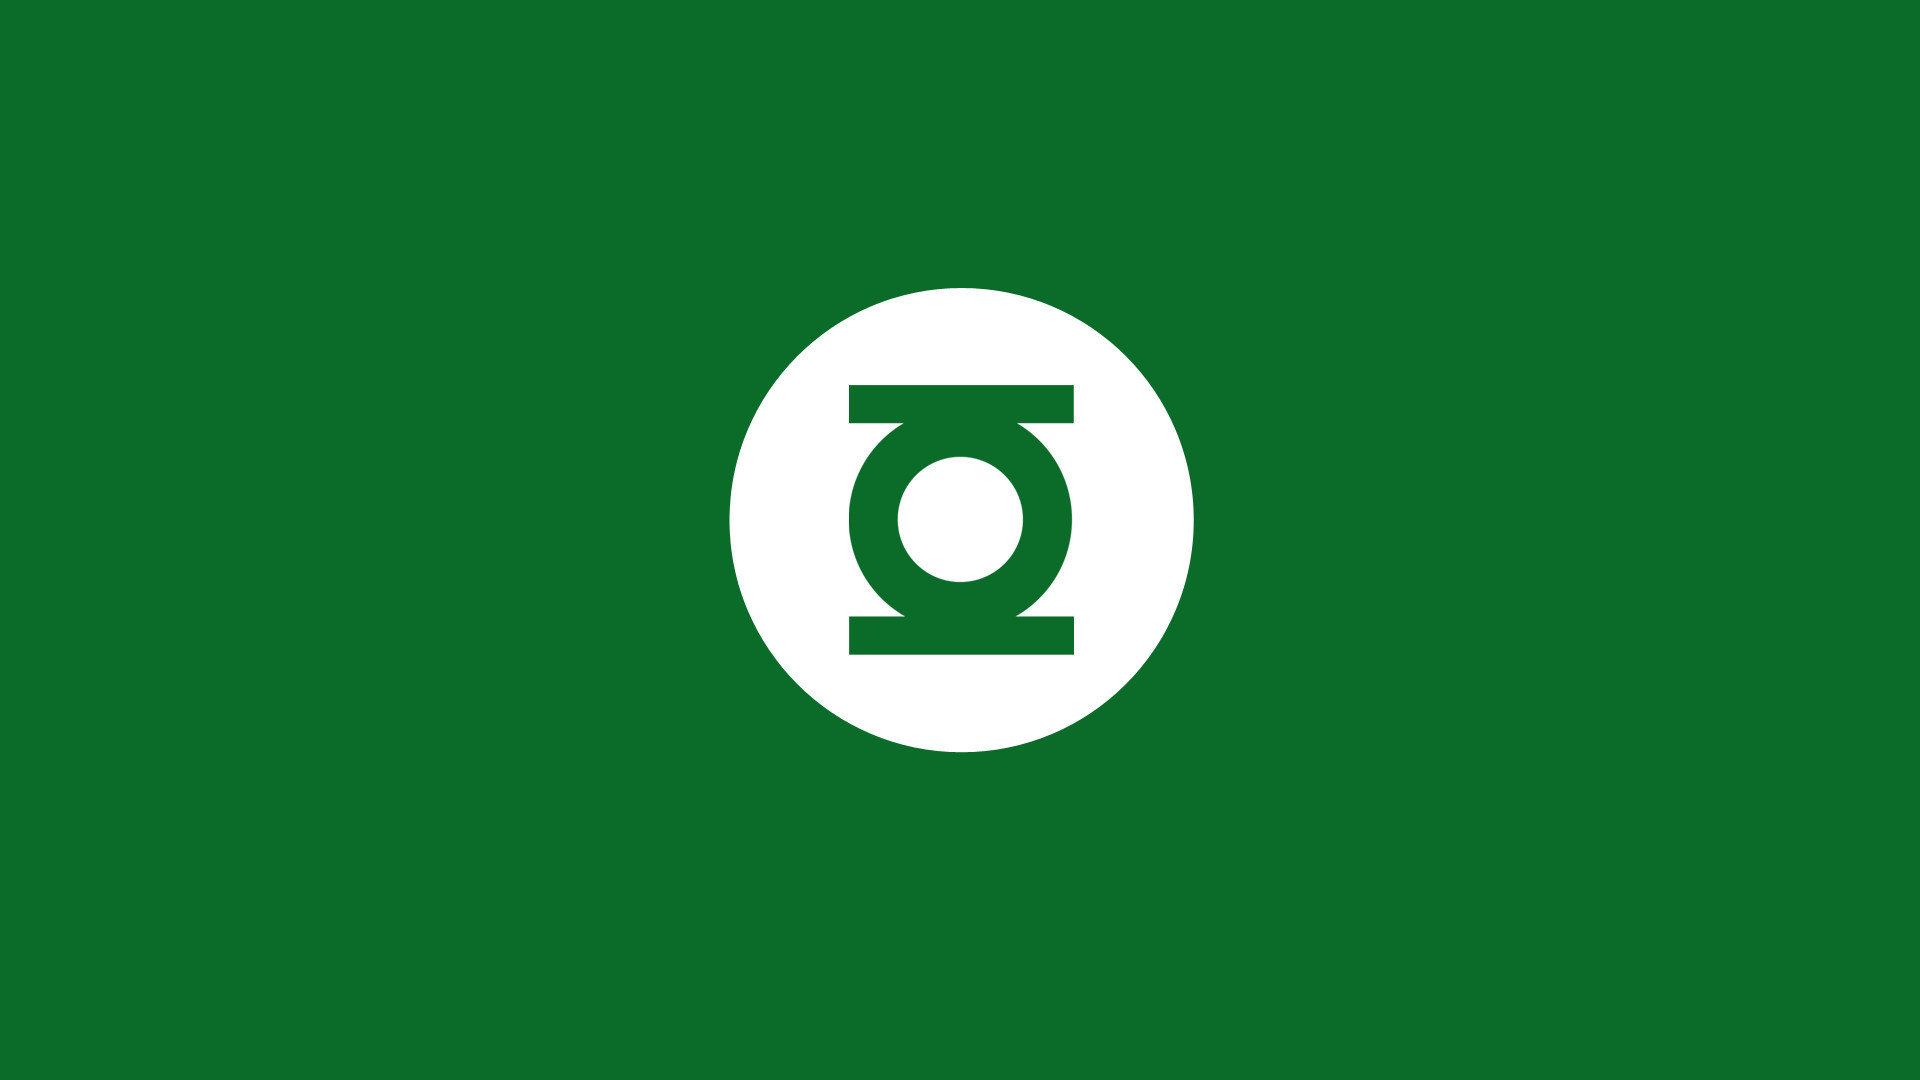 This is a picture of Priceless Green Latern Logo